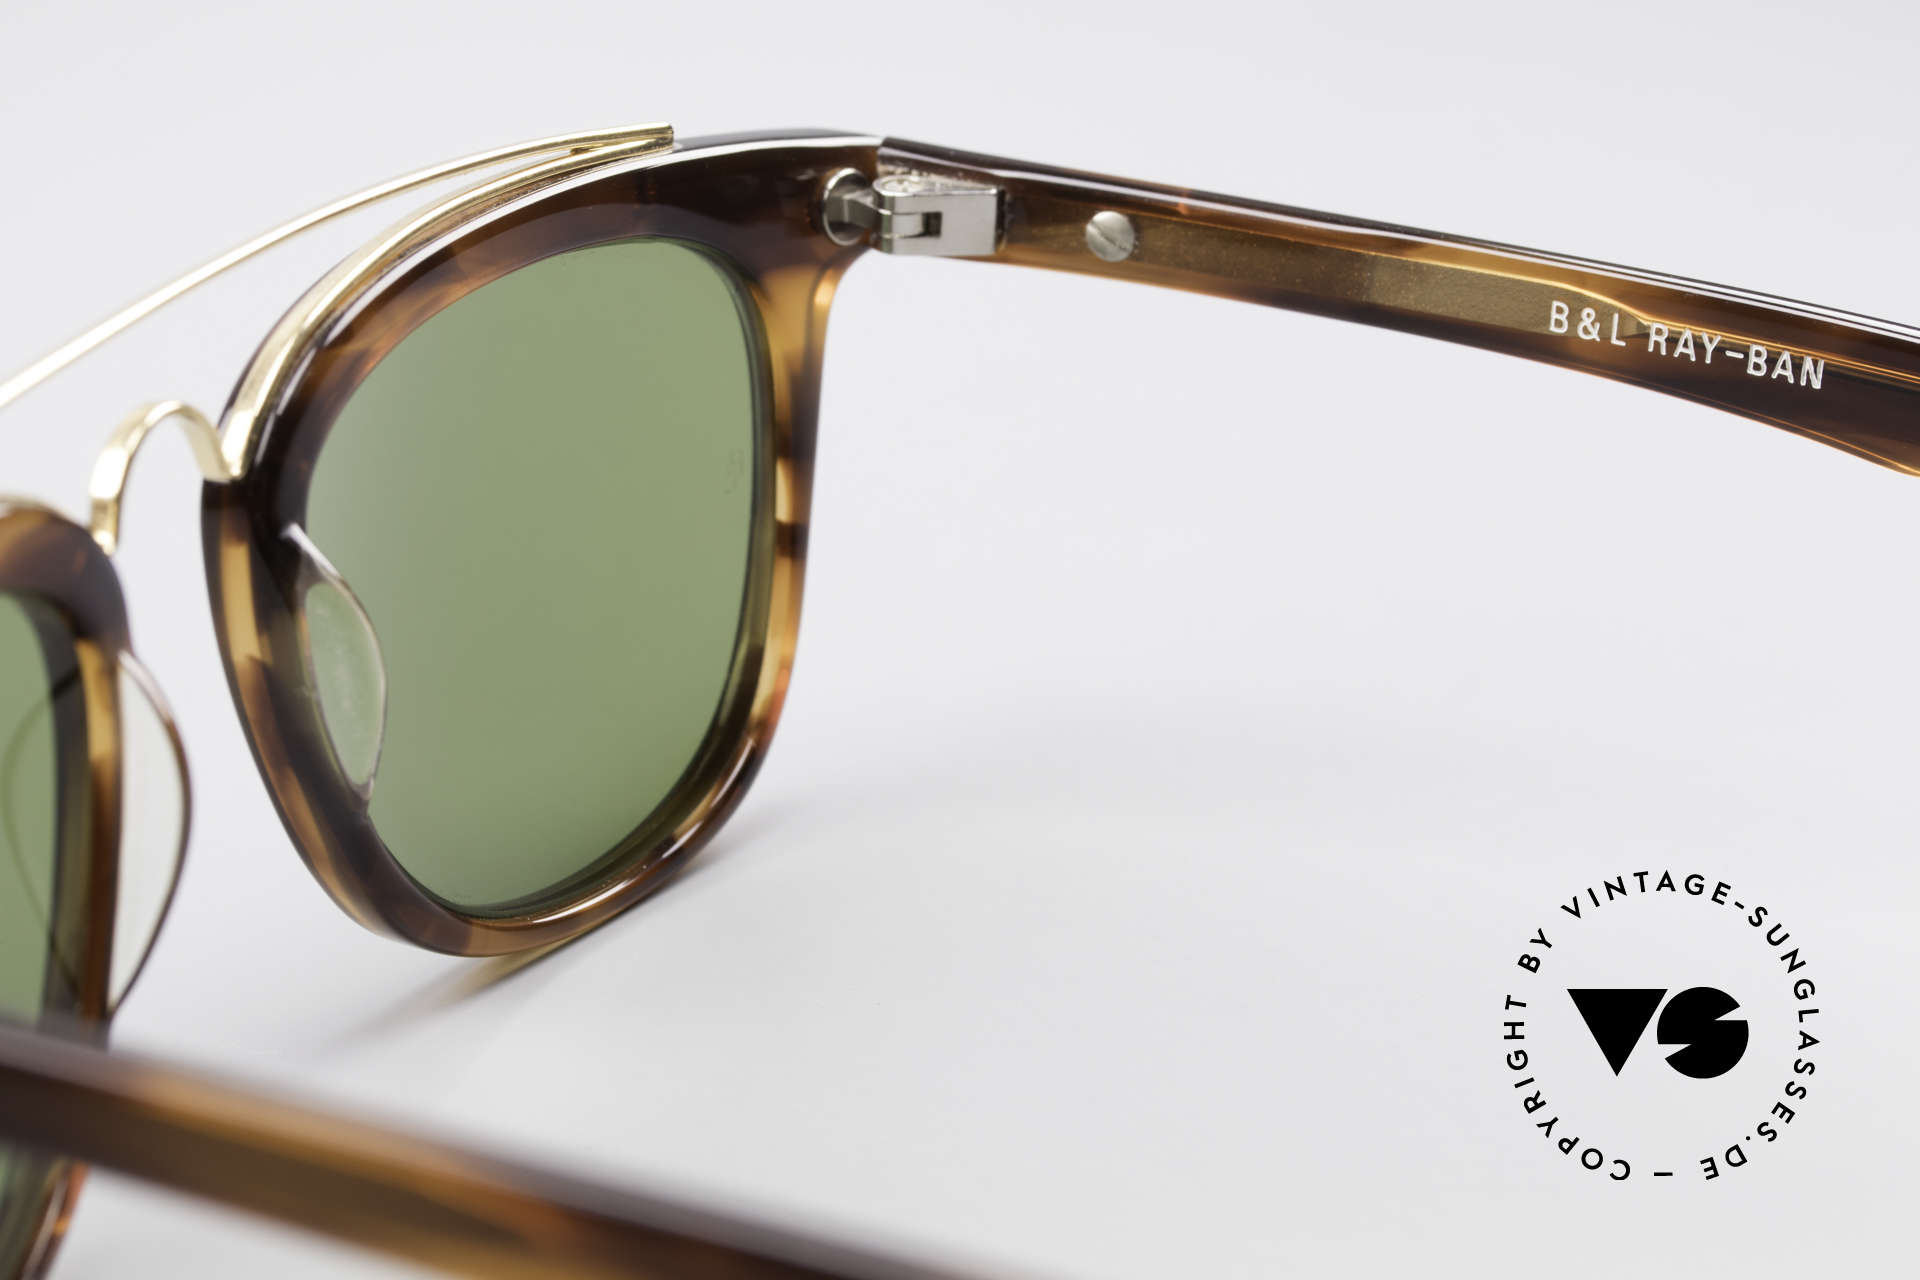 Ray Ban Gatsby Style 5 B&L Bausch Lomb Sunglasses, unworn (like all our vintage RAY-BAN Gatsby), Made for Men and Women